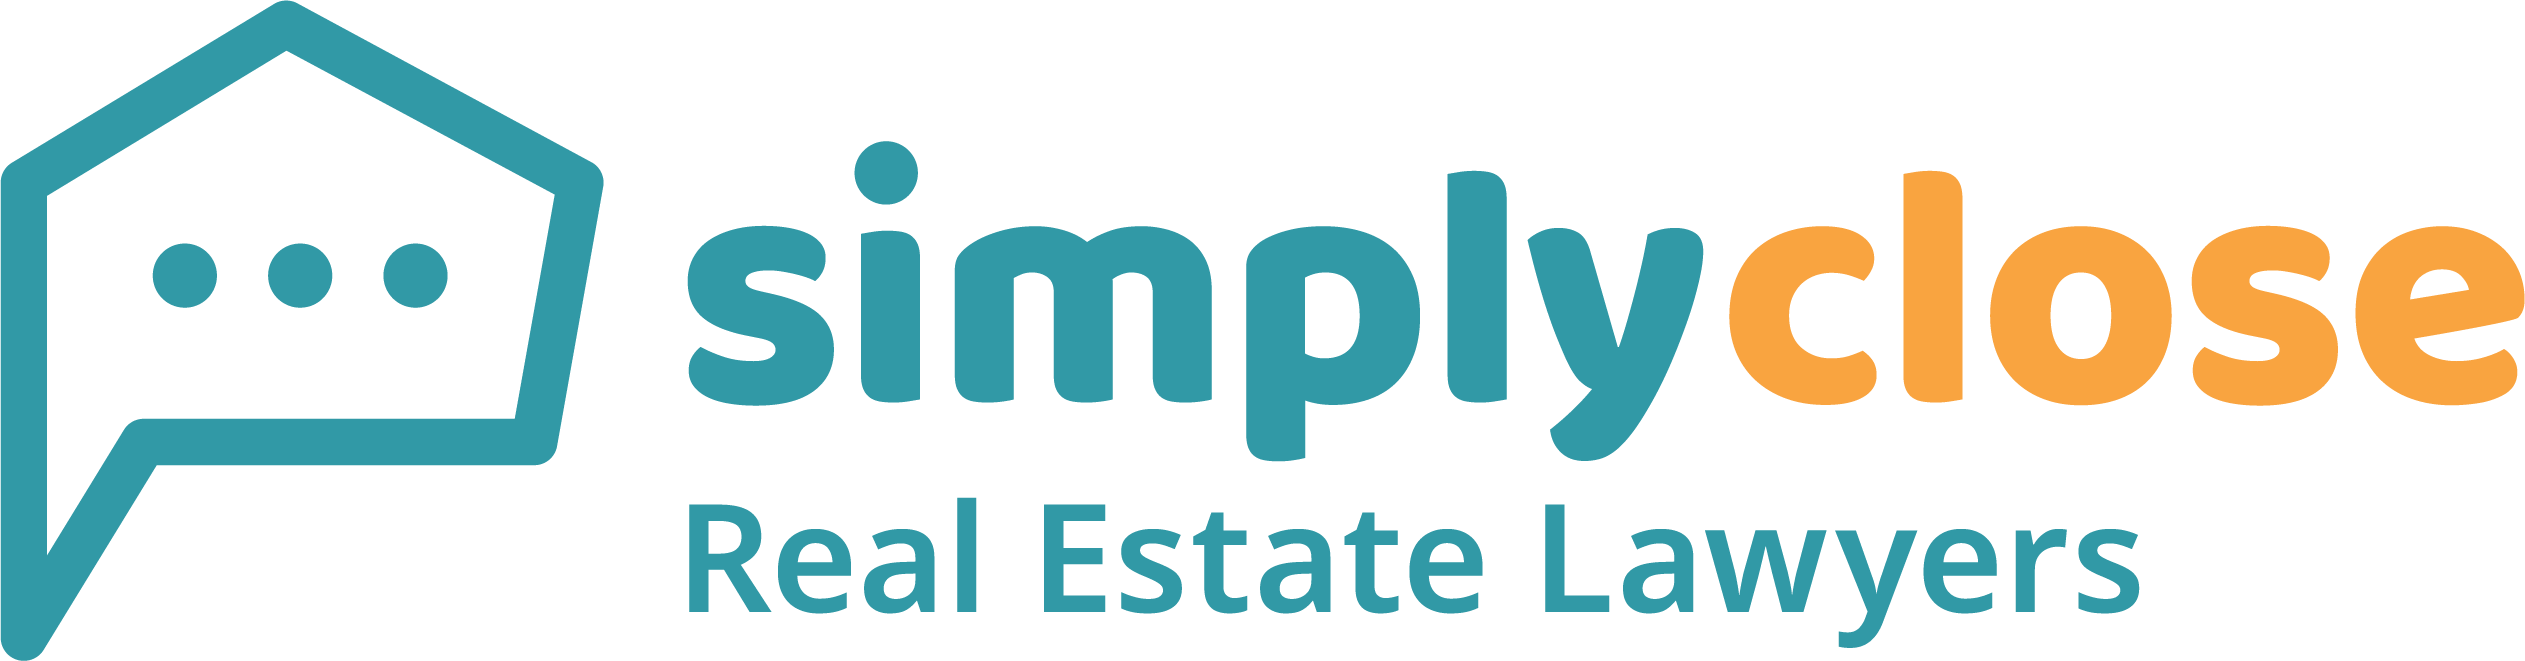 simplyclose Real Estate Lawyers